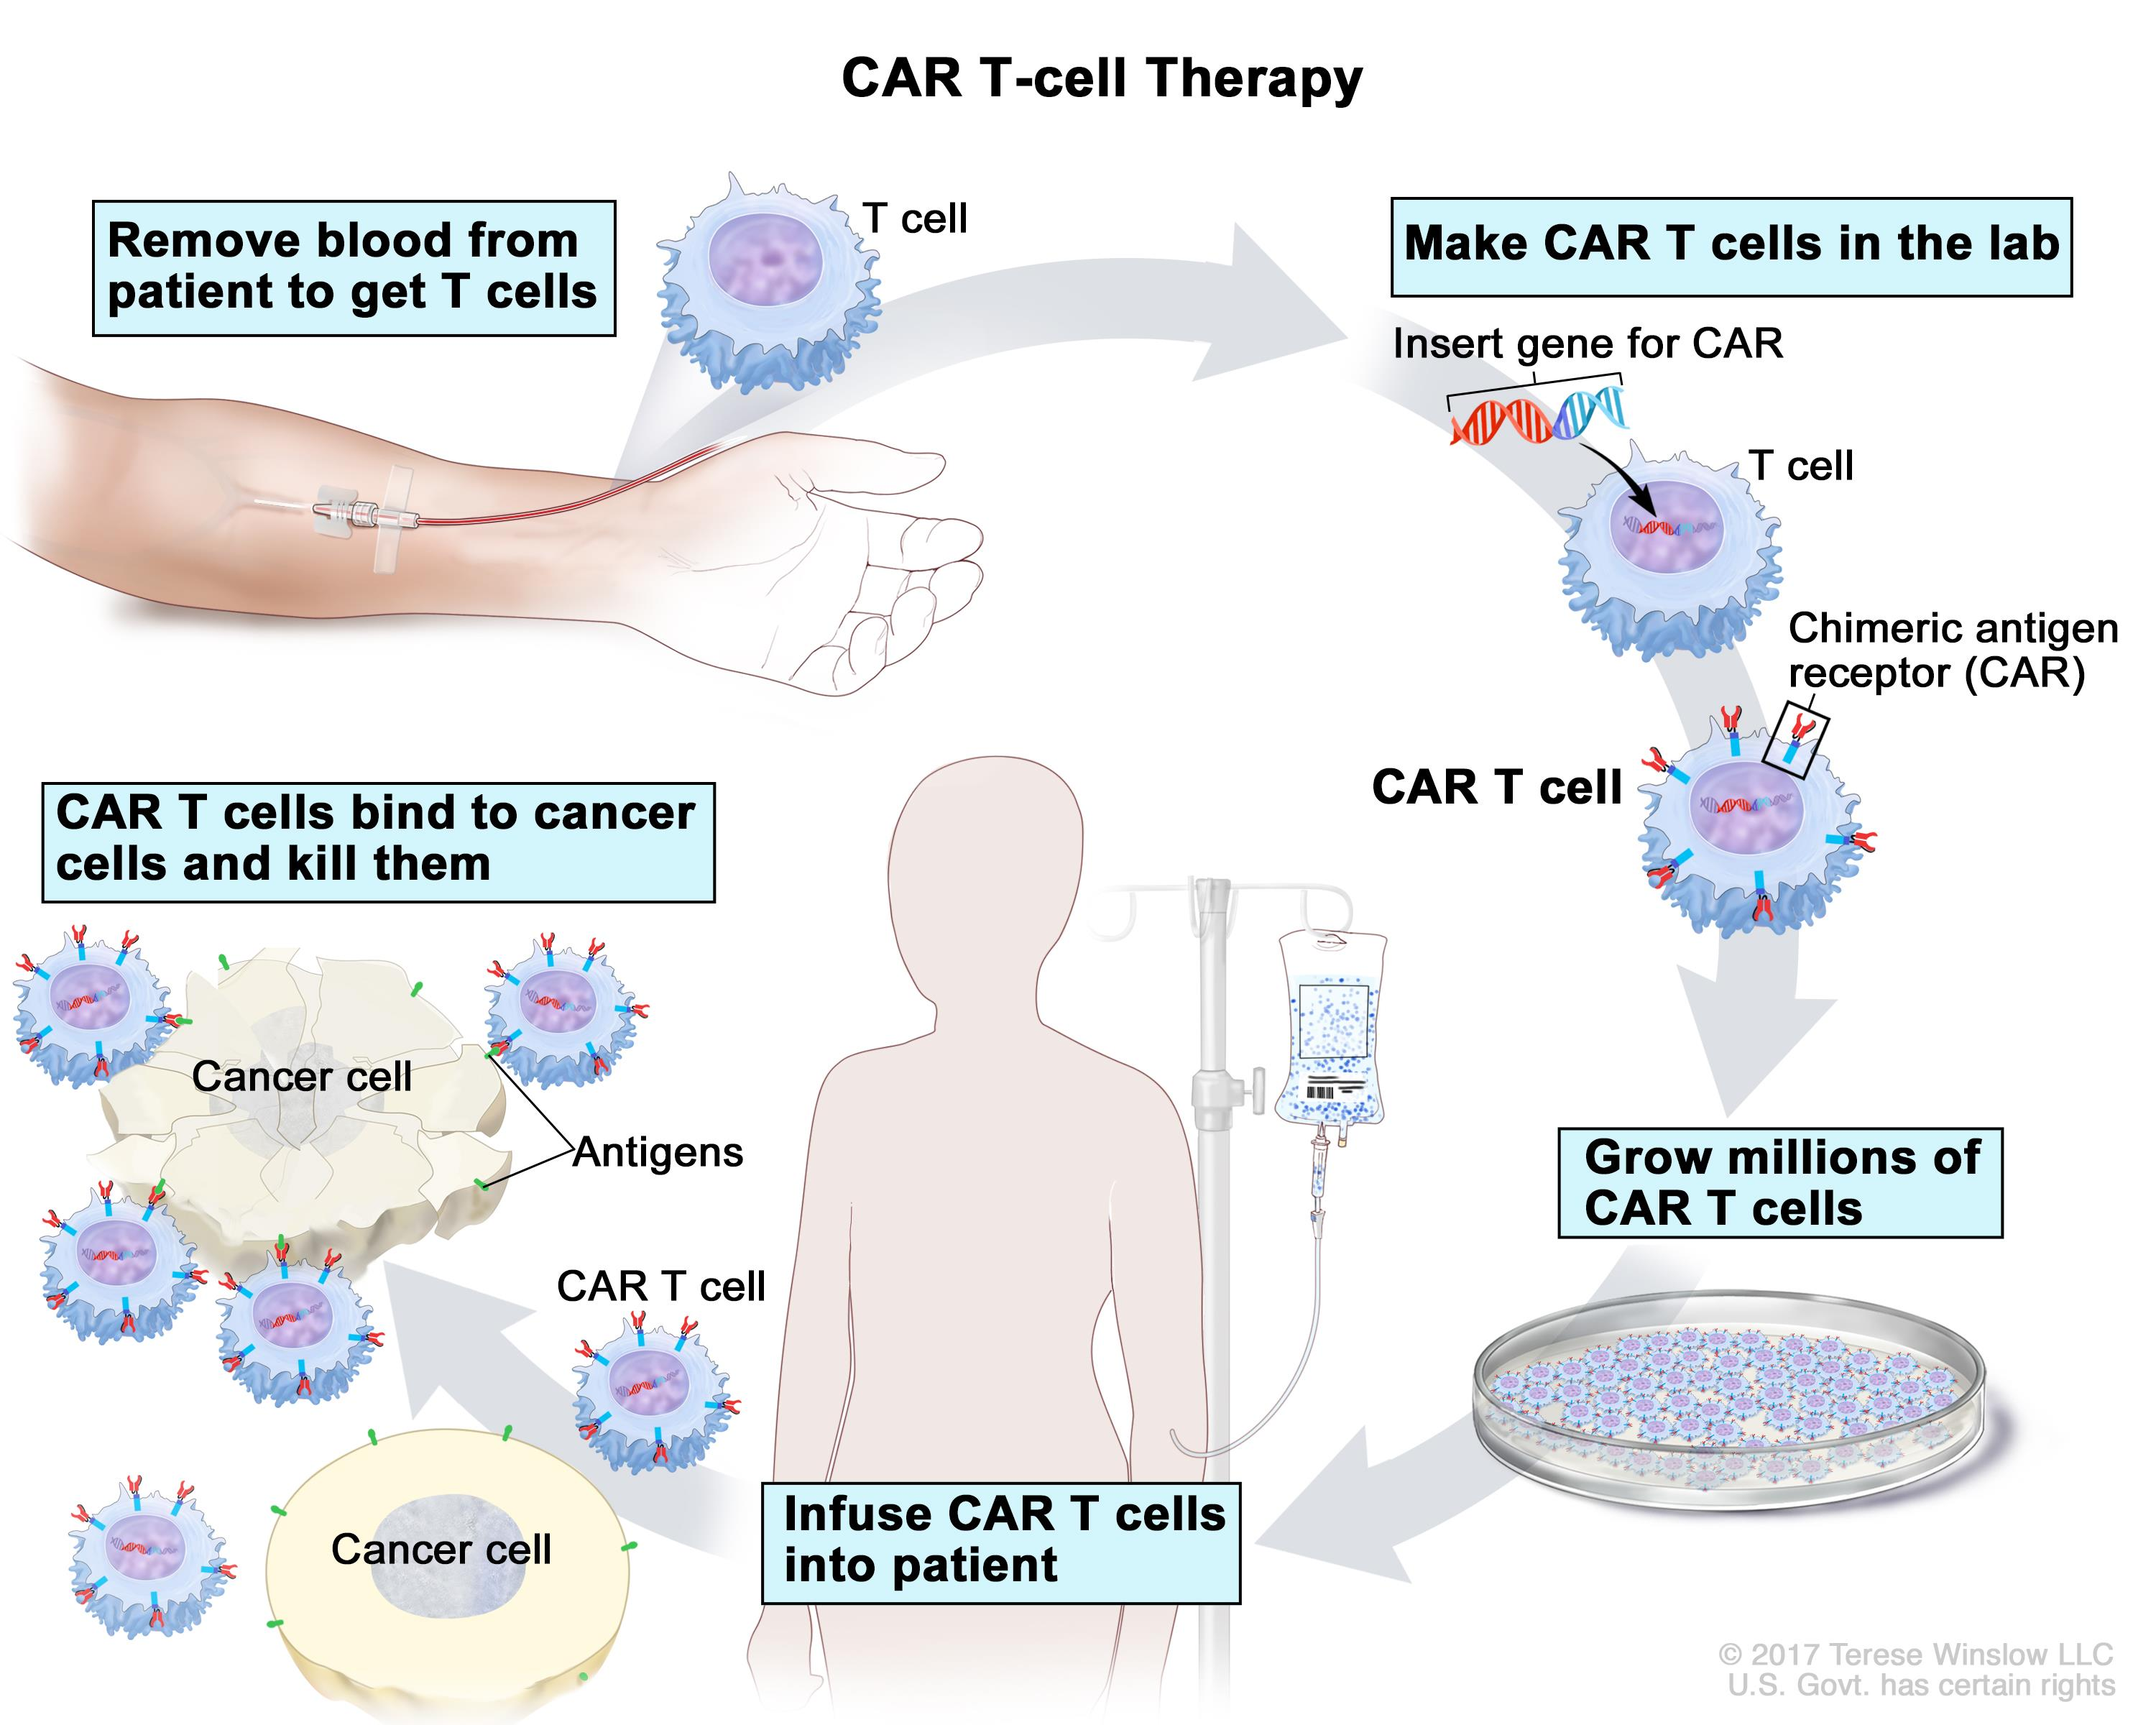 CAR T-cell therapy; drawing of blood being removed from a vein in a patient's arm to get T cells. Also shown is a special receptor called a chimeric antigen receptor (CAR) being made in the laboratory; the gene for CAR is inserted into the T cells and then millions of CAR T cells are grown. Drawing also shows the CAR T cells being given to the patient by infusion and binding to antigens on the cancer cells and killing them.